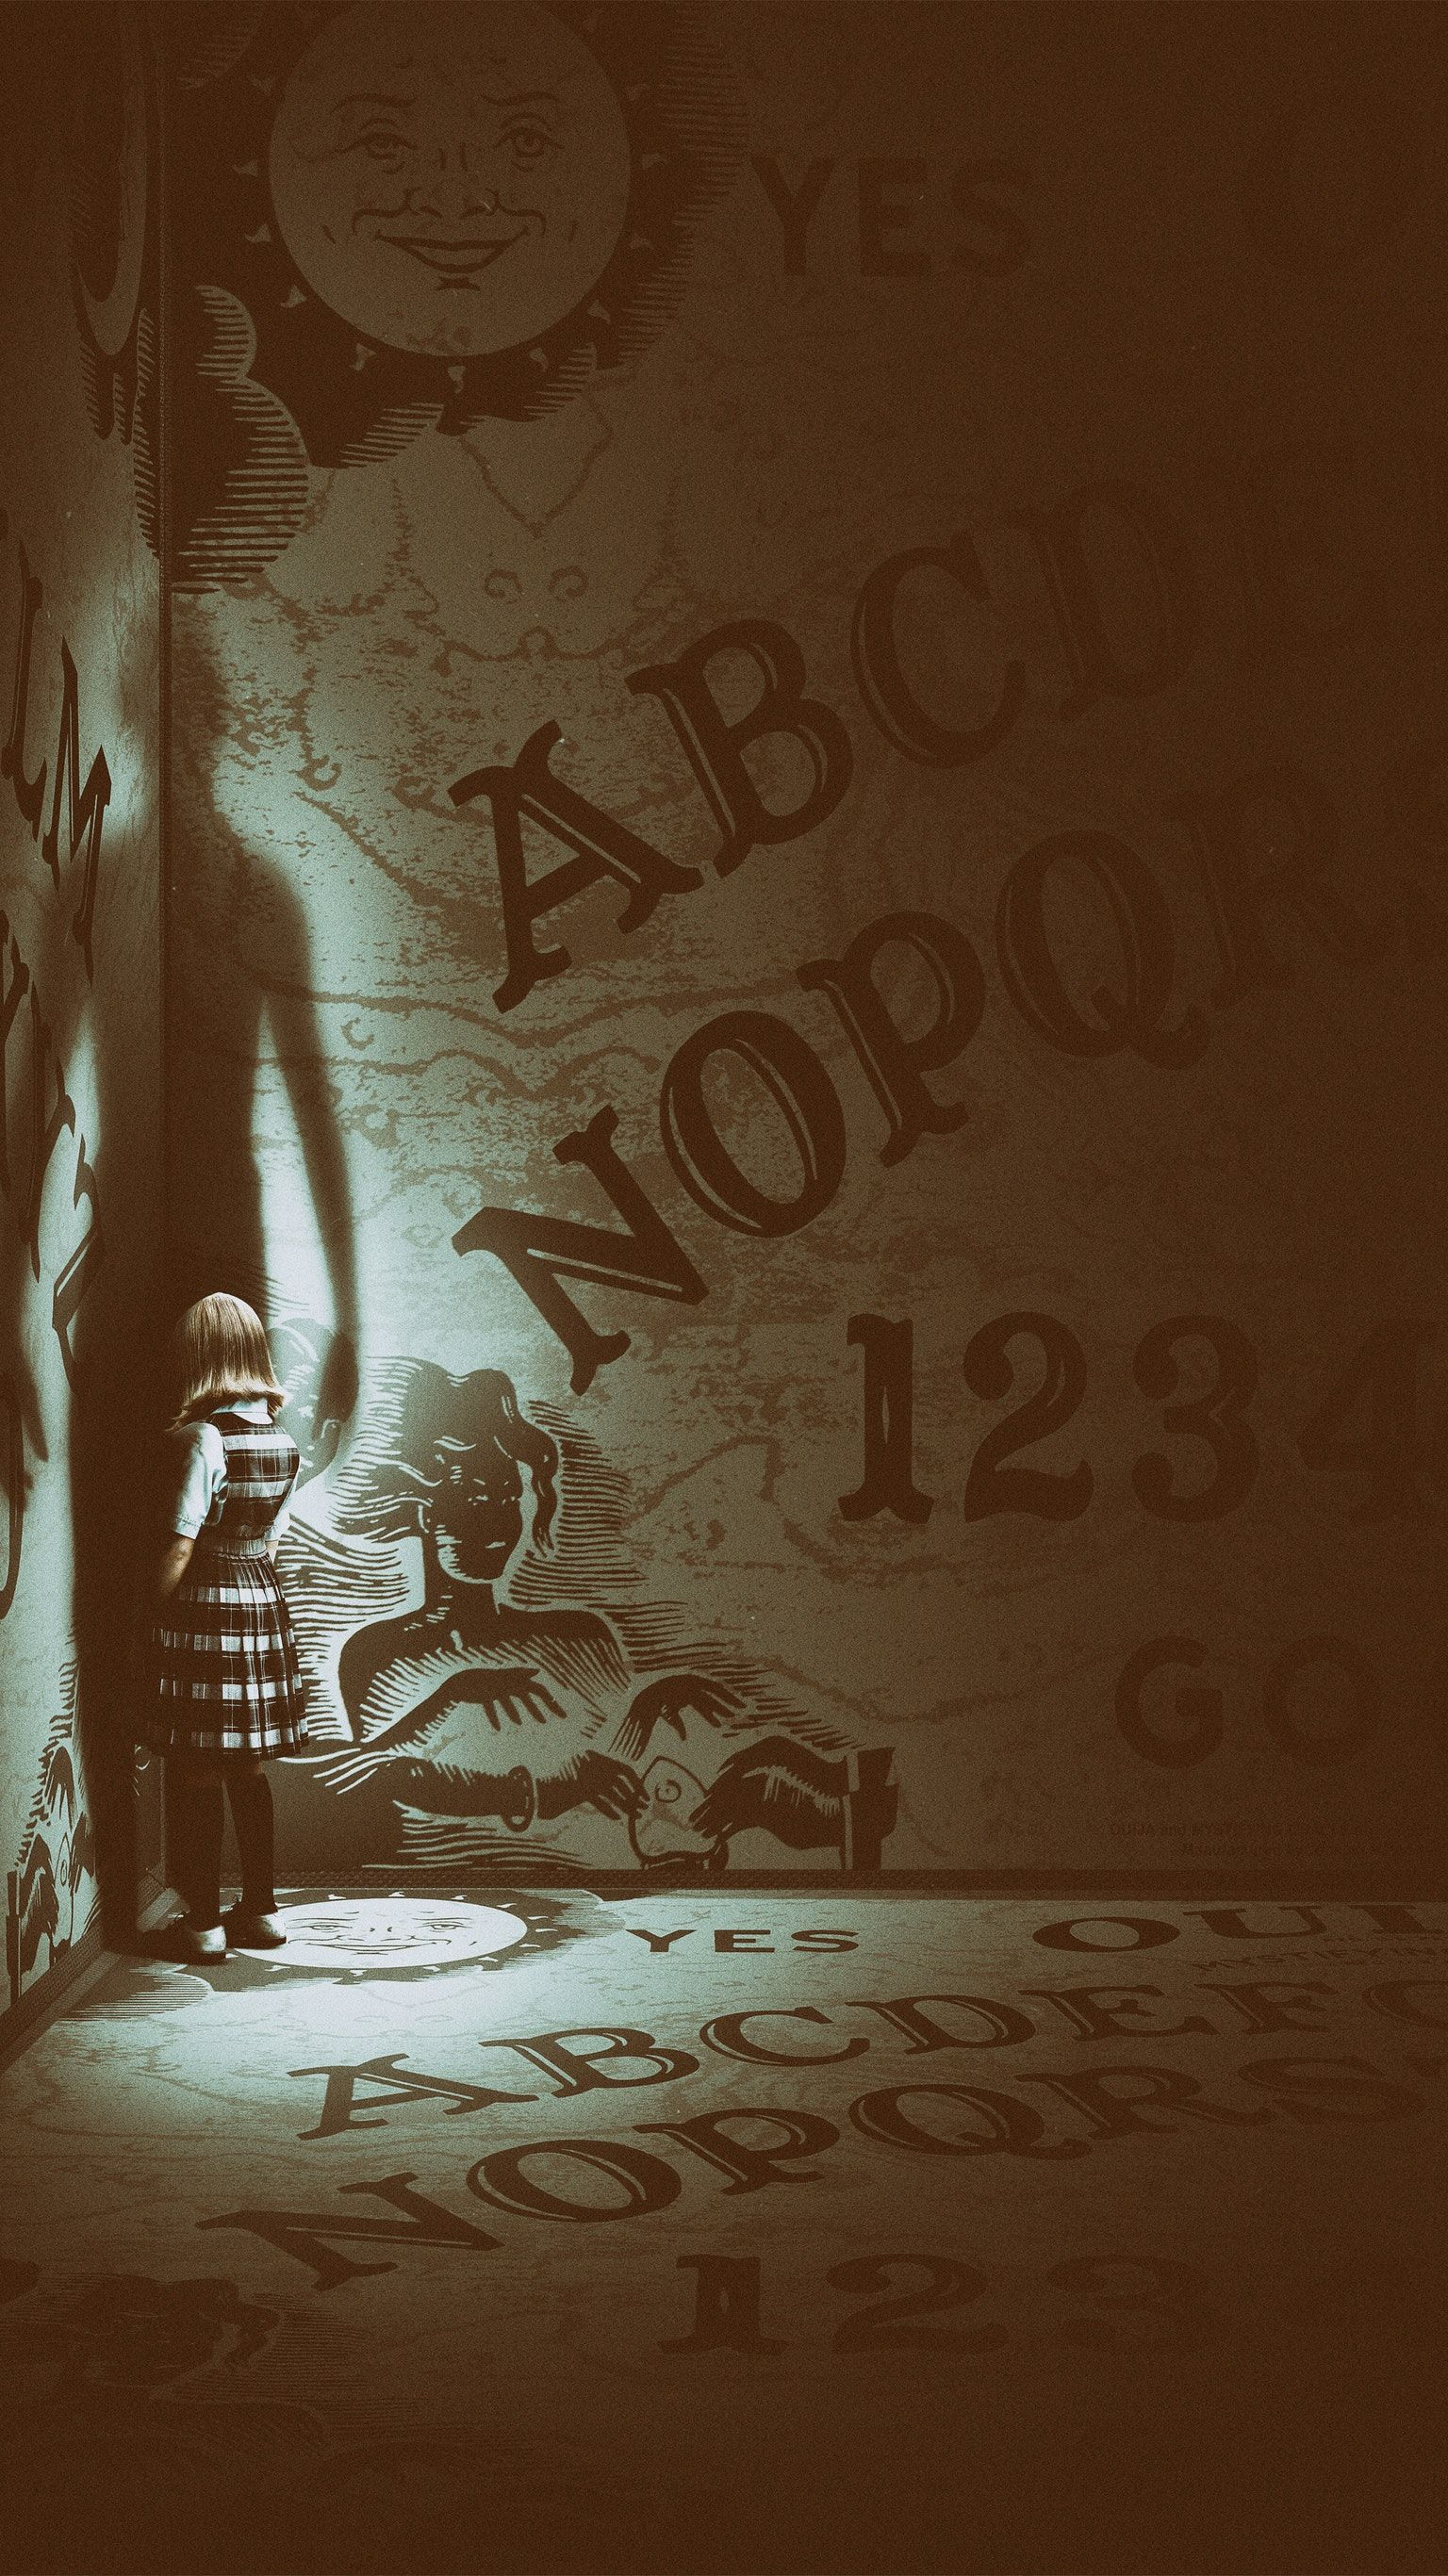 Ouija Origin Of Evil 2016 Phone Wallpaper With Images Scary